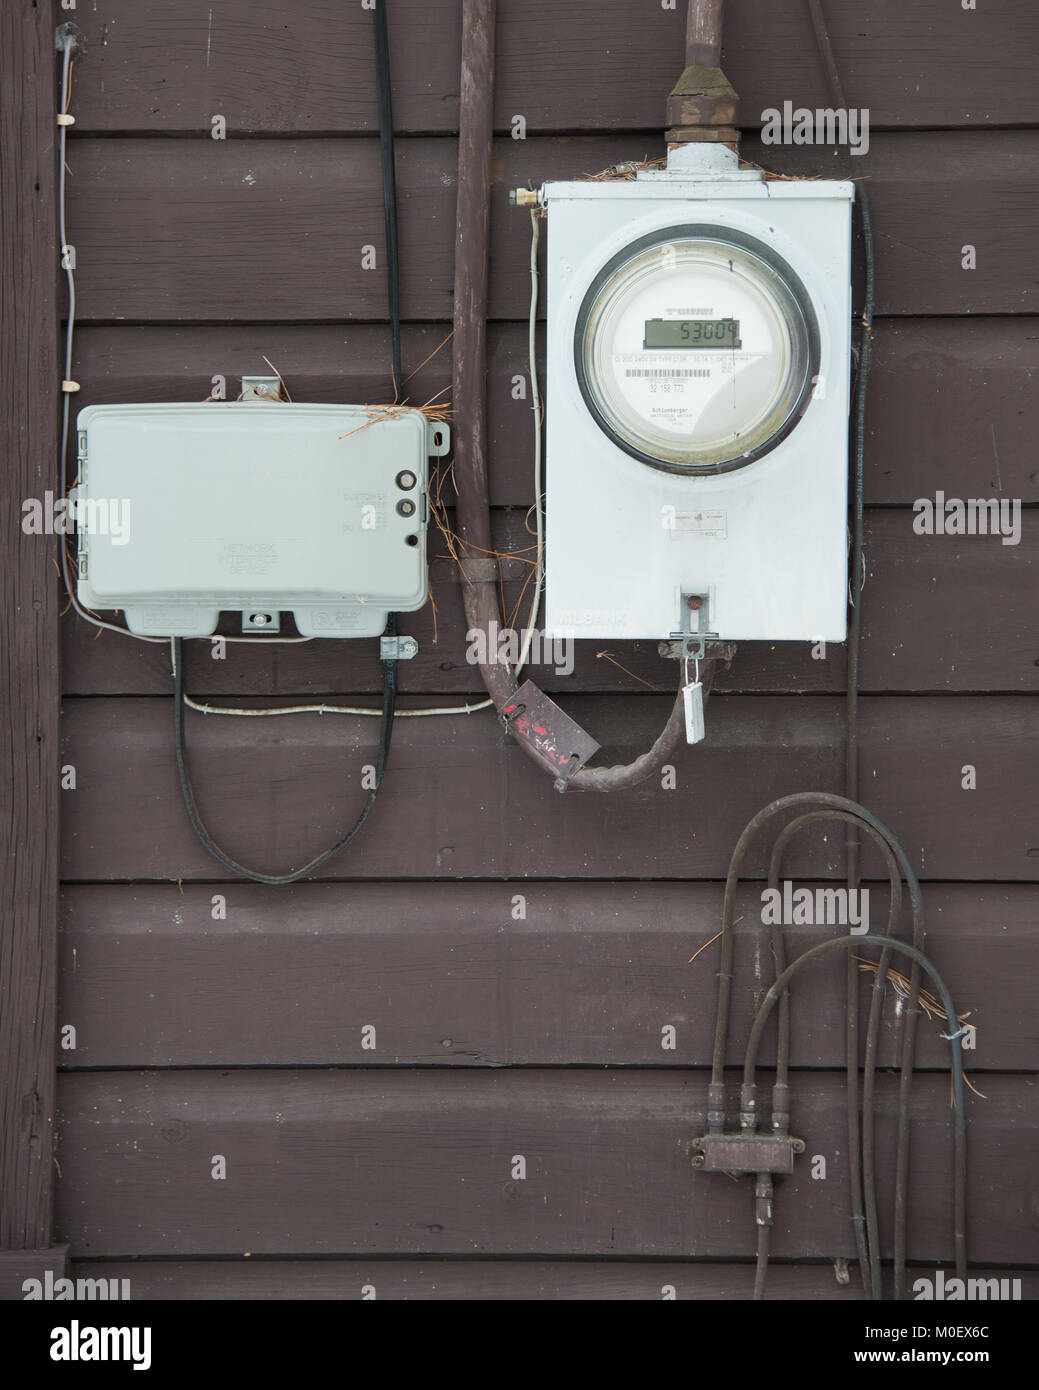 hight resolution of an electric meter telephone box and cable television utility connections on the outside of a